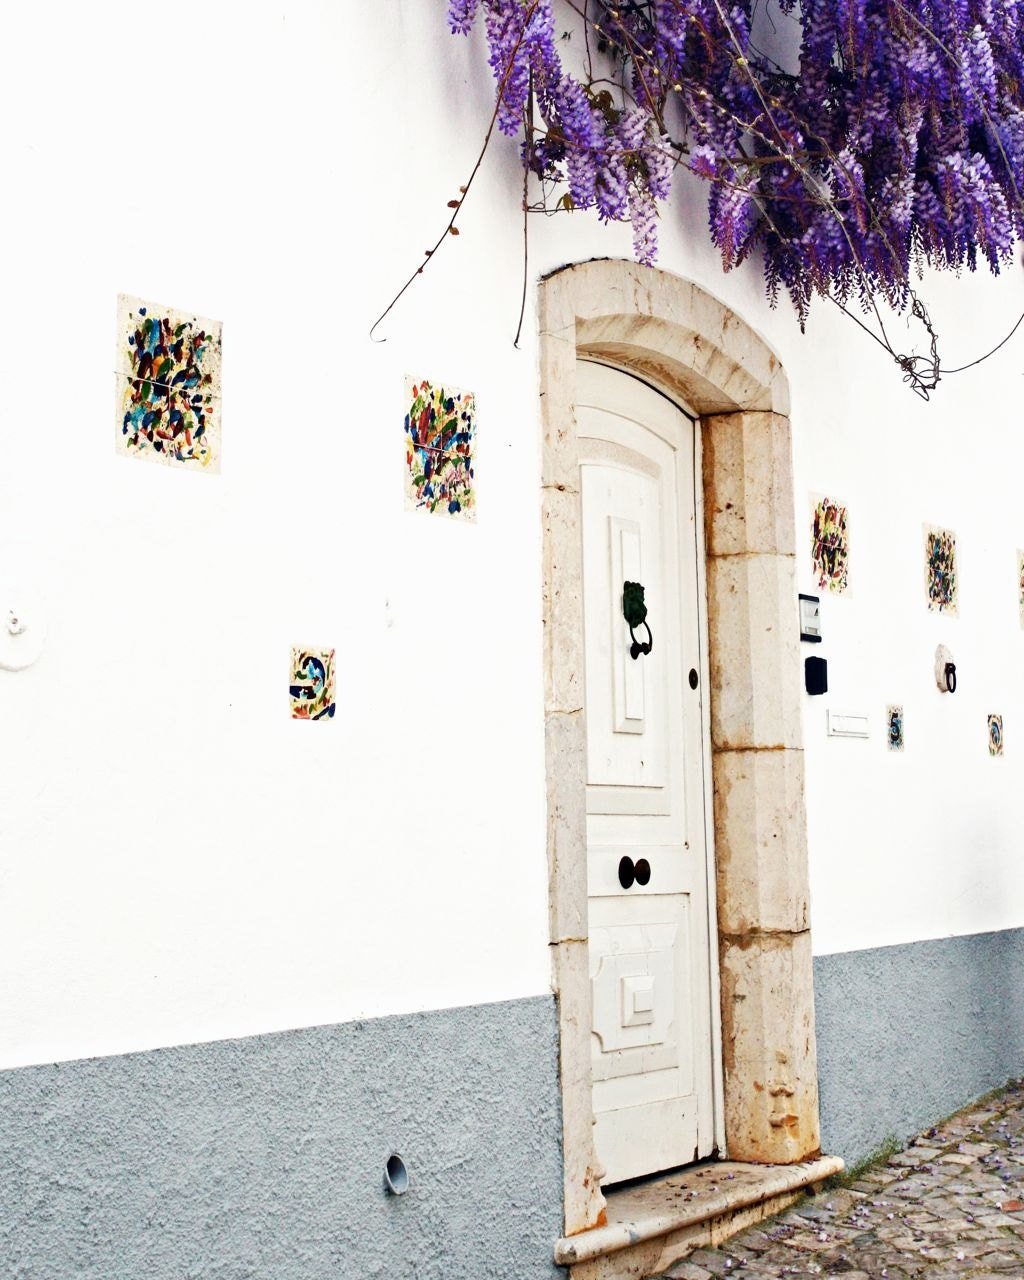 Portugal Photography - A Door in Portugal - Portuguese Door Print - Home Decor - White Photo - Travel Photography - Portugal Art - VitaNostra